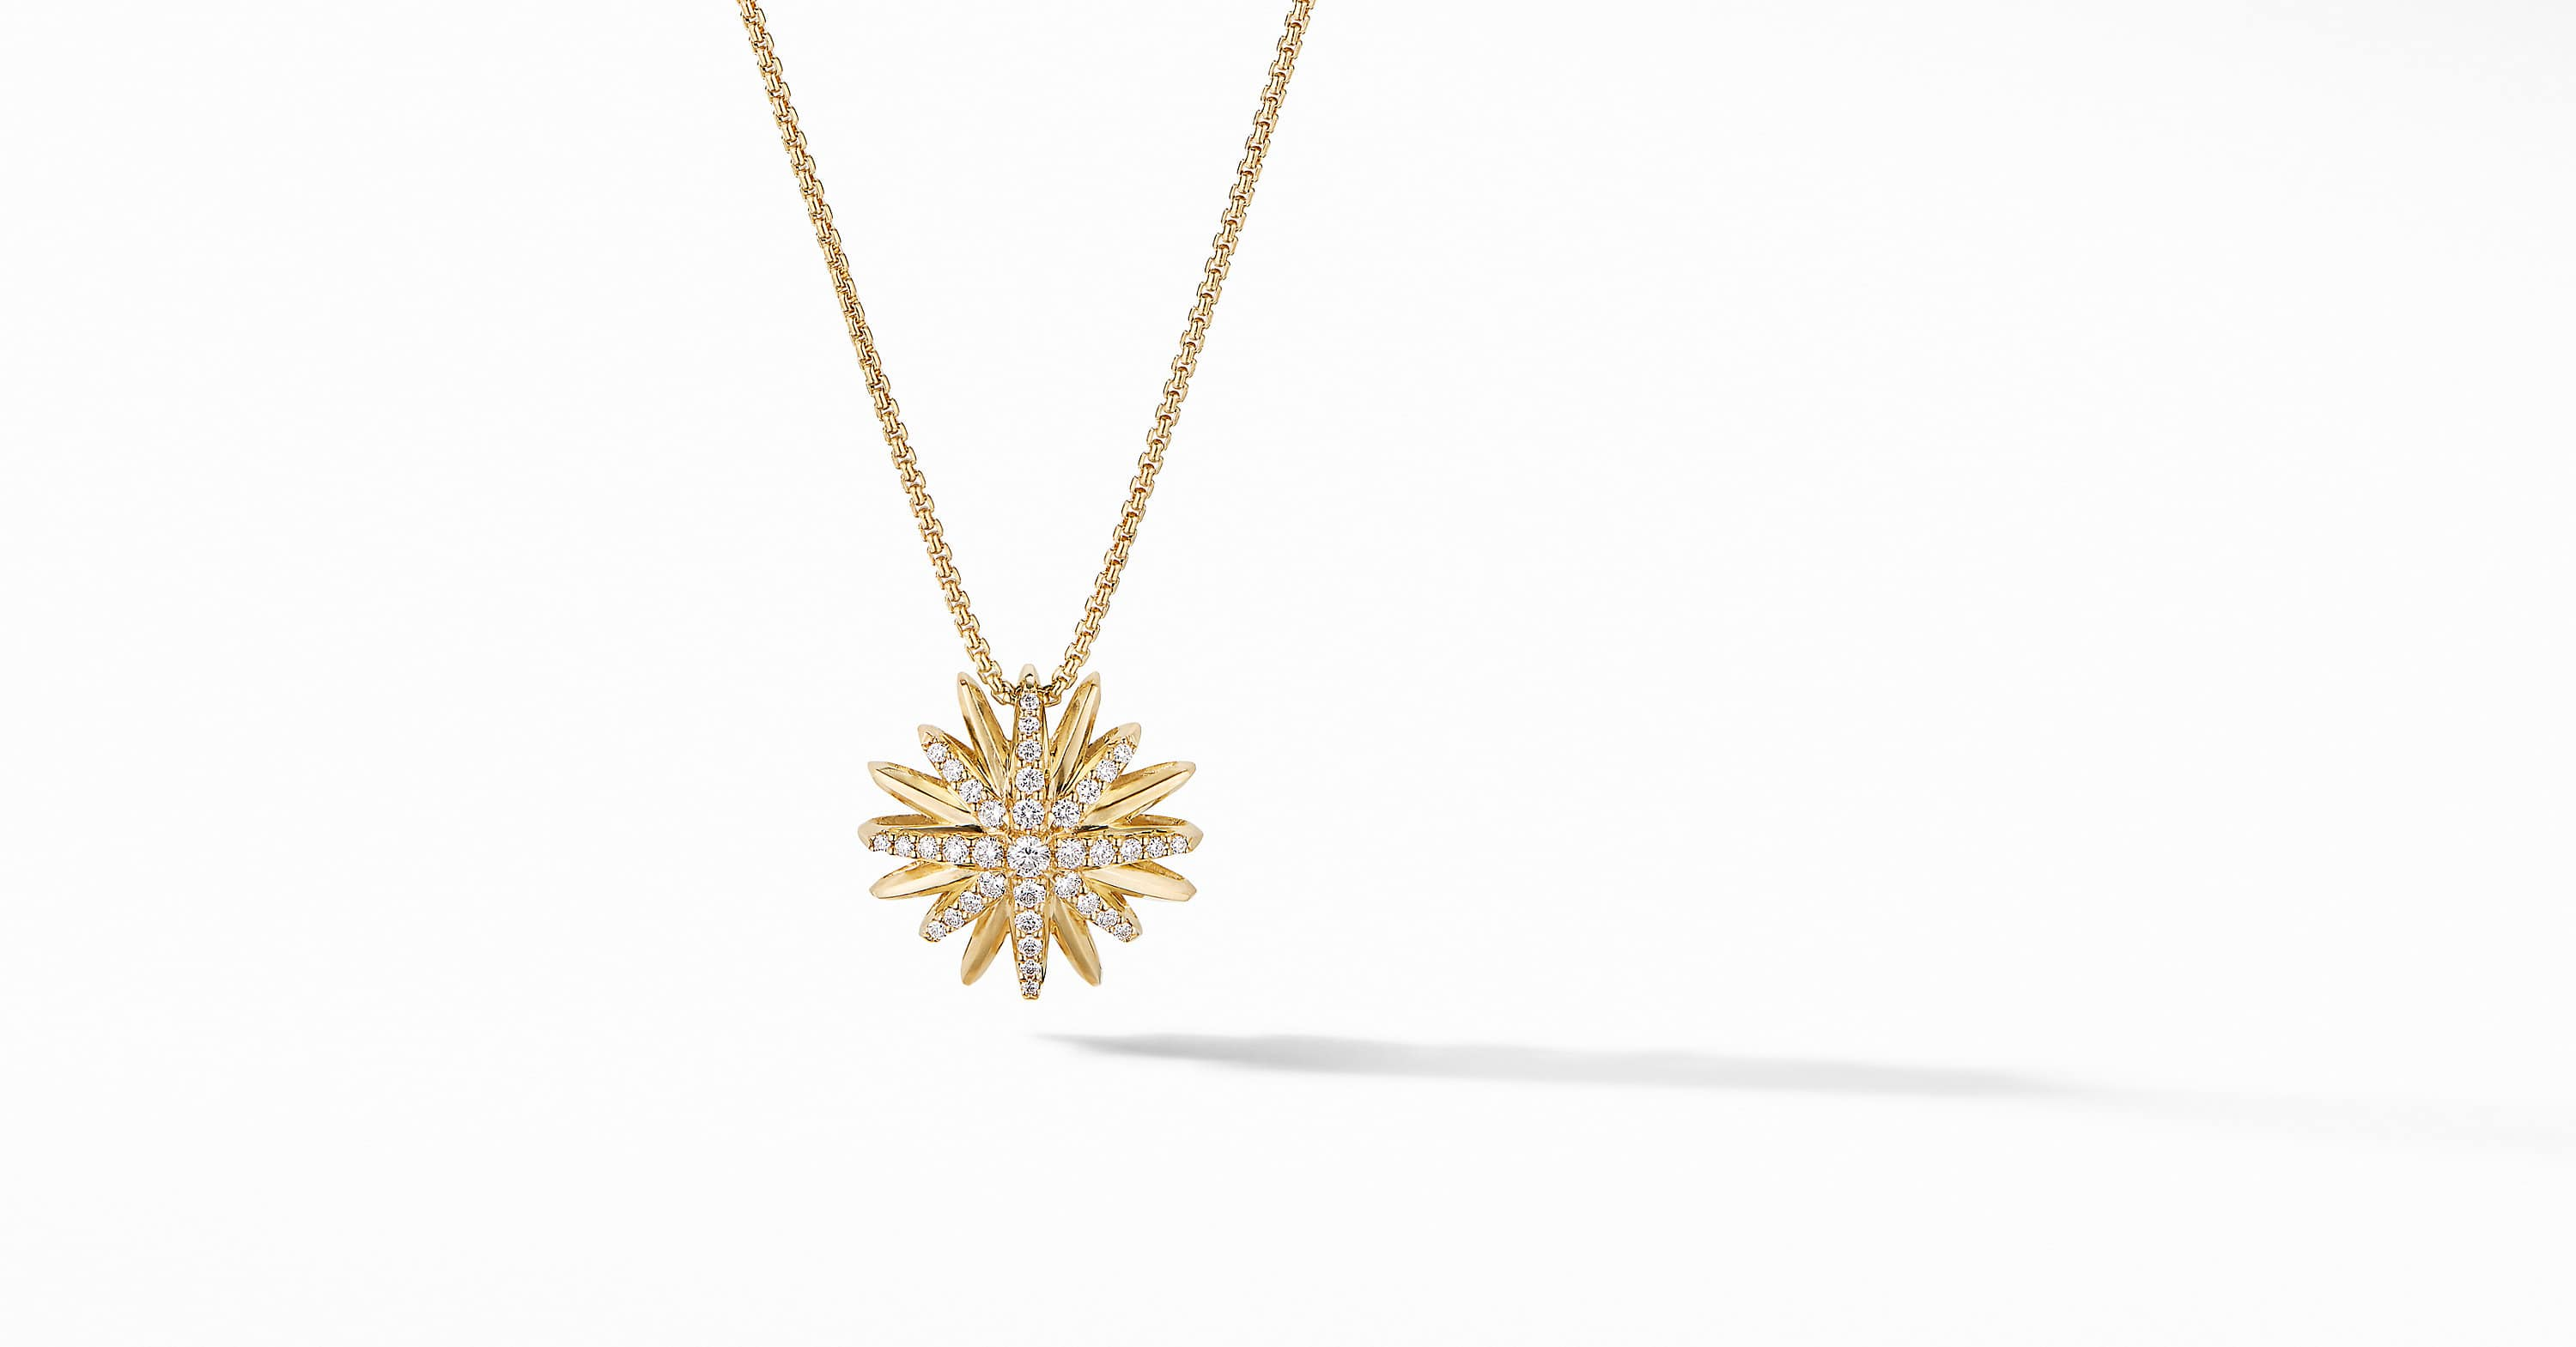 Starburst Pendant Necklace in 18K Yellow Gold with Diamonds, 19mm